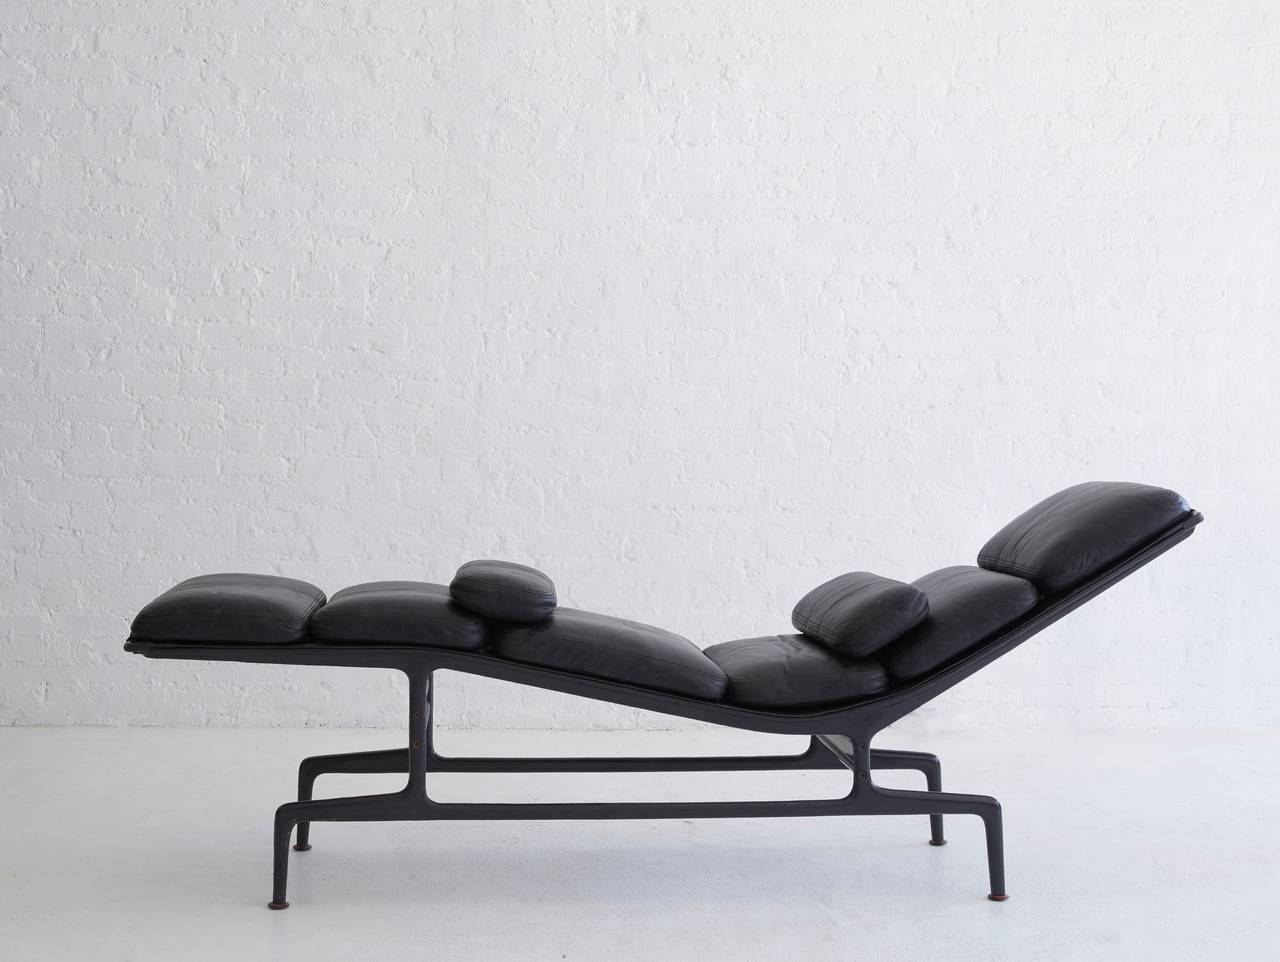 Eames chaise lounge for billy wilder at 1stdibs for 4 chaises eames